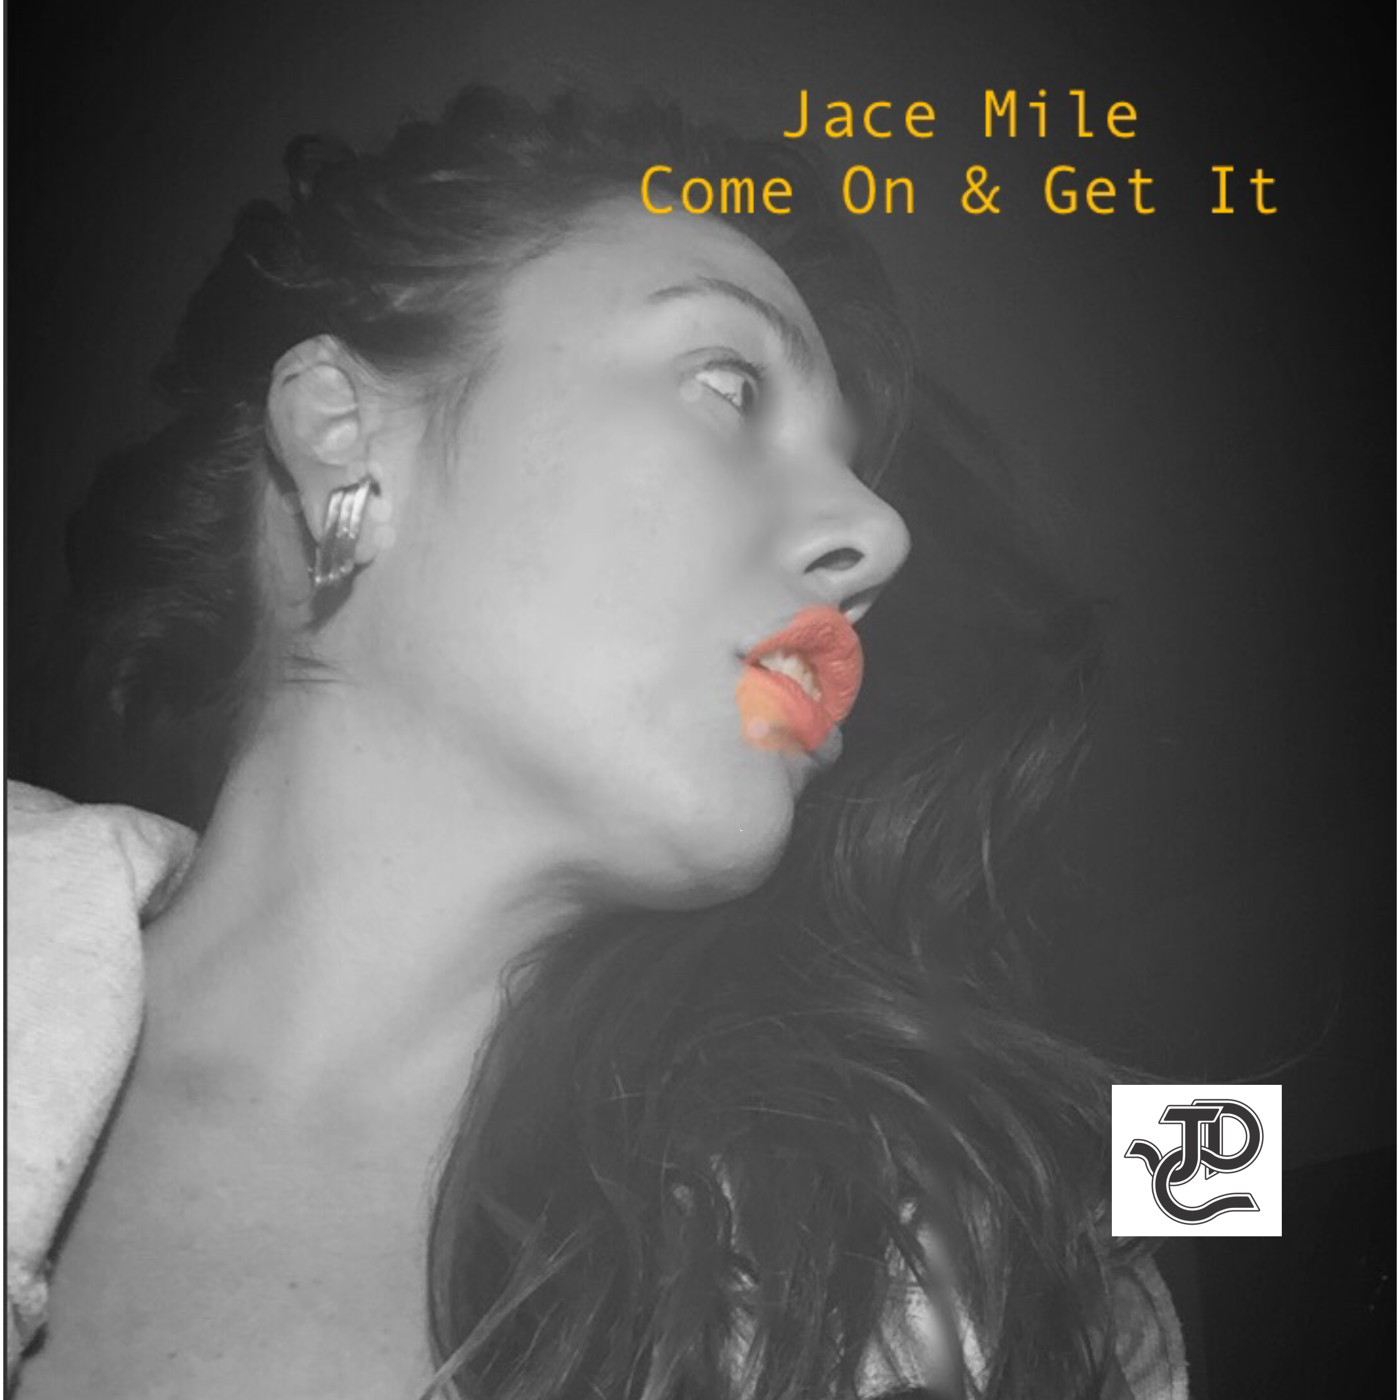 "Jace Mile ""Come On & Get It"" - A dark, moody and sexy dance track with a sultry female vocal beckoning the listener to come and get it."